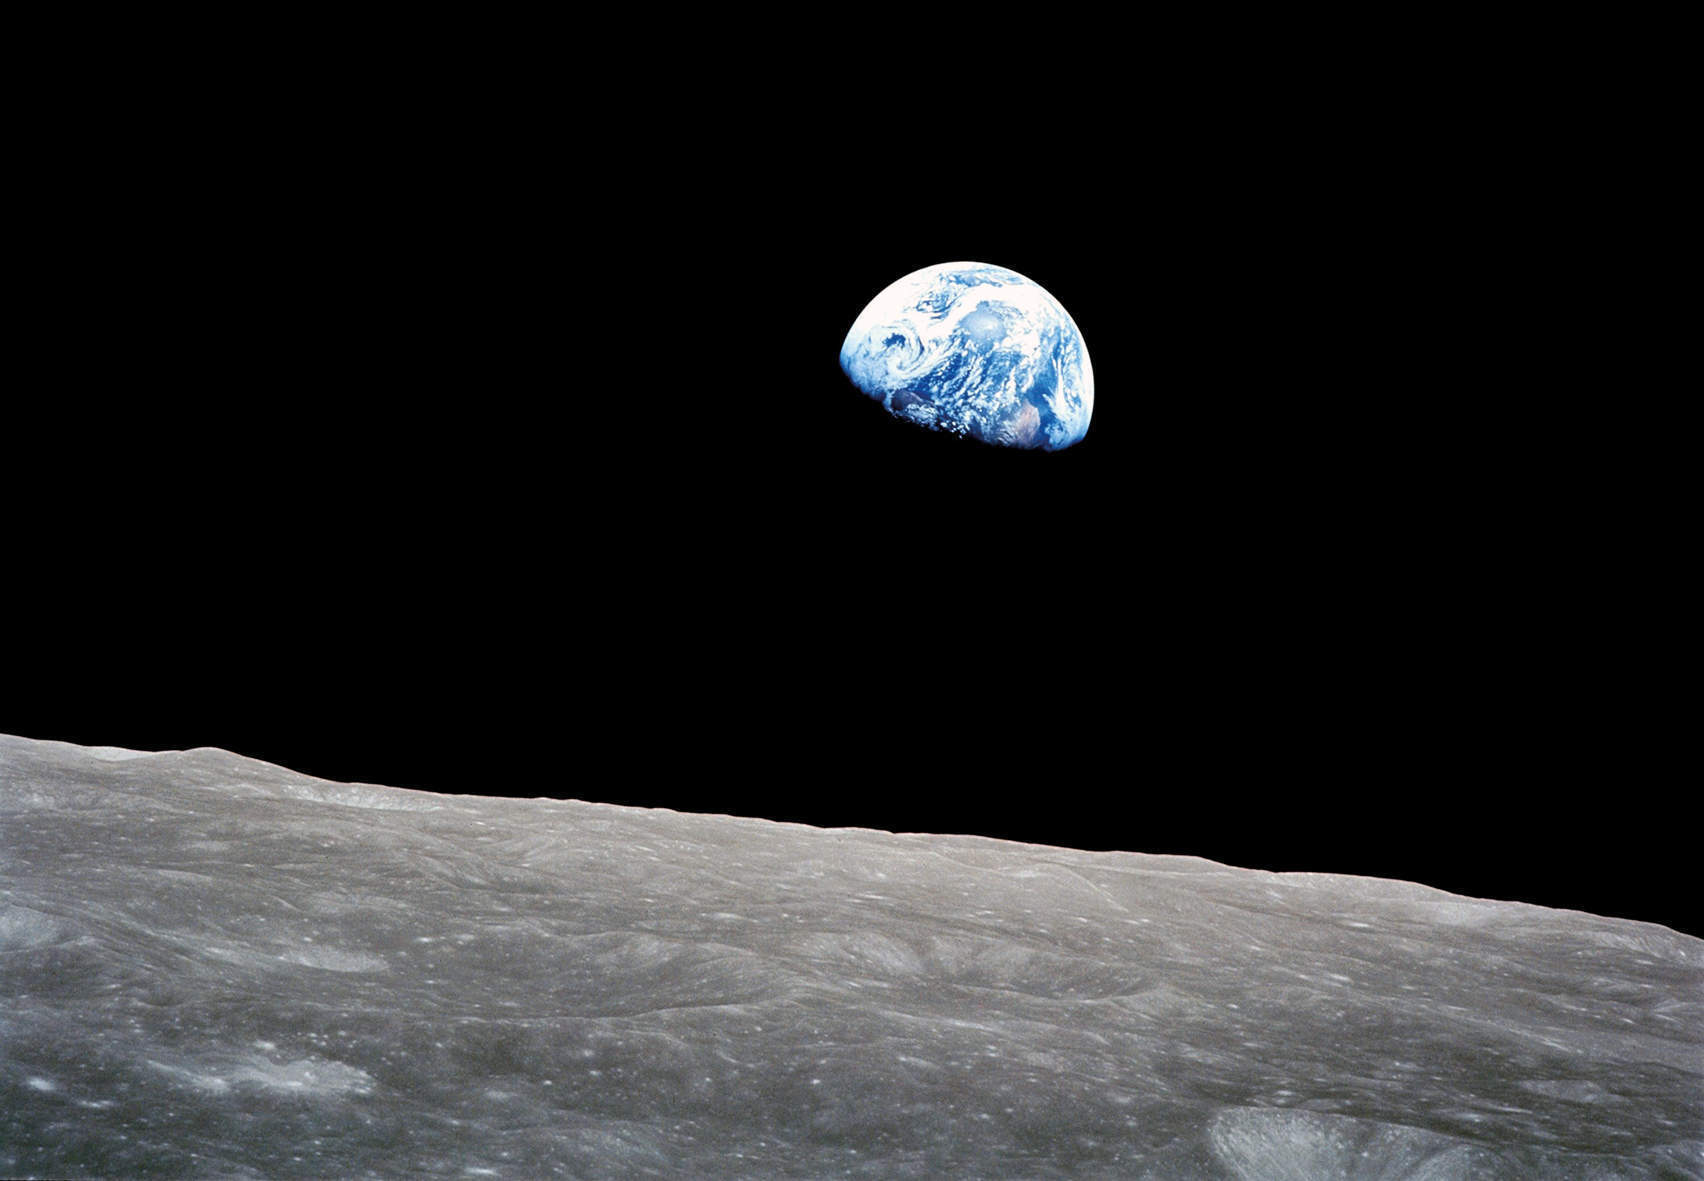 The real value of space travel is recognising the beauty of our planet